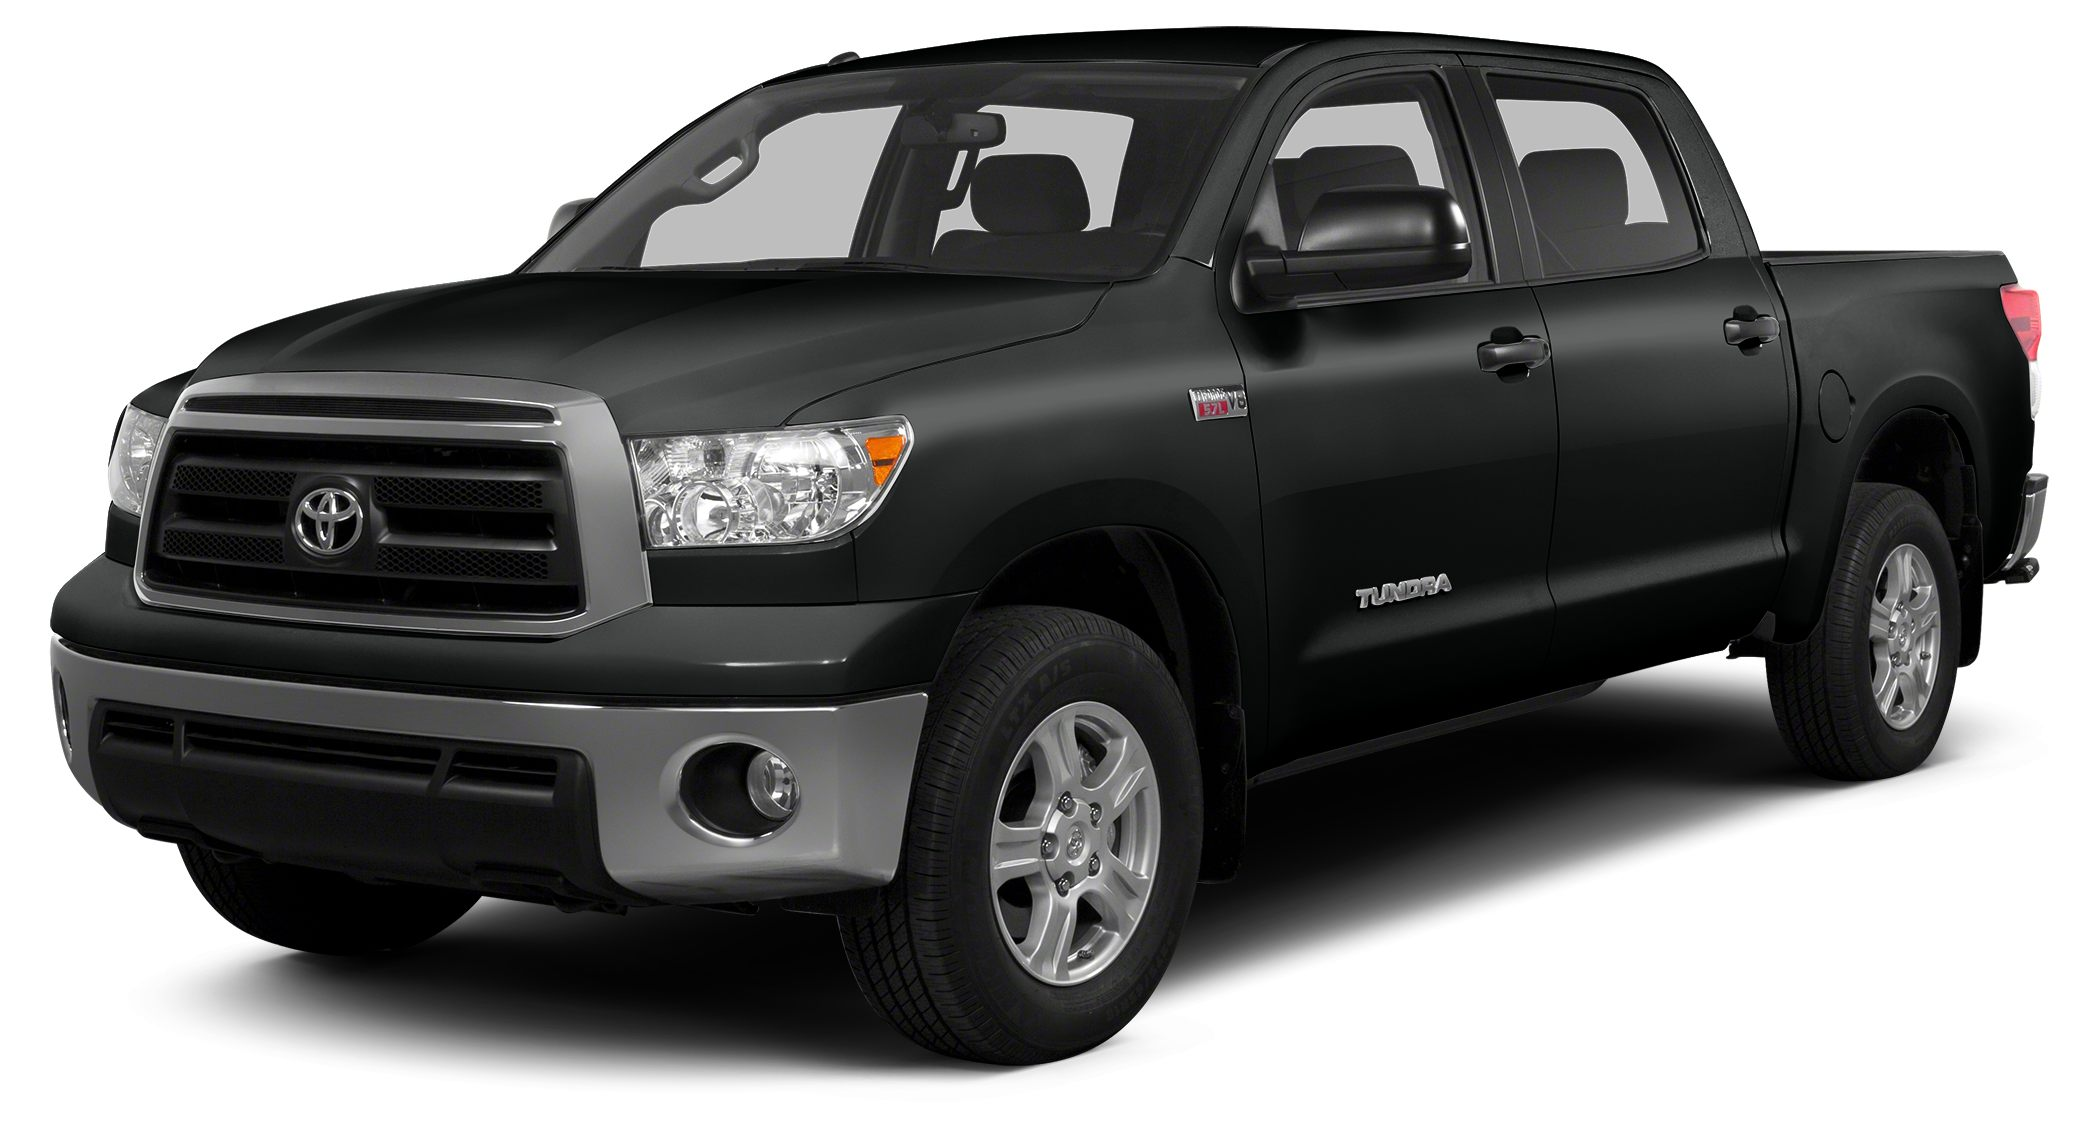 2013 Toyota Tundra Grade CARFAX 1-Owner LOW MILES - 67269 Tundra trim CD Player Dual Zone AC